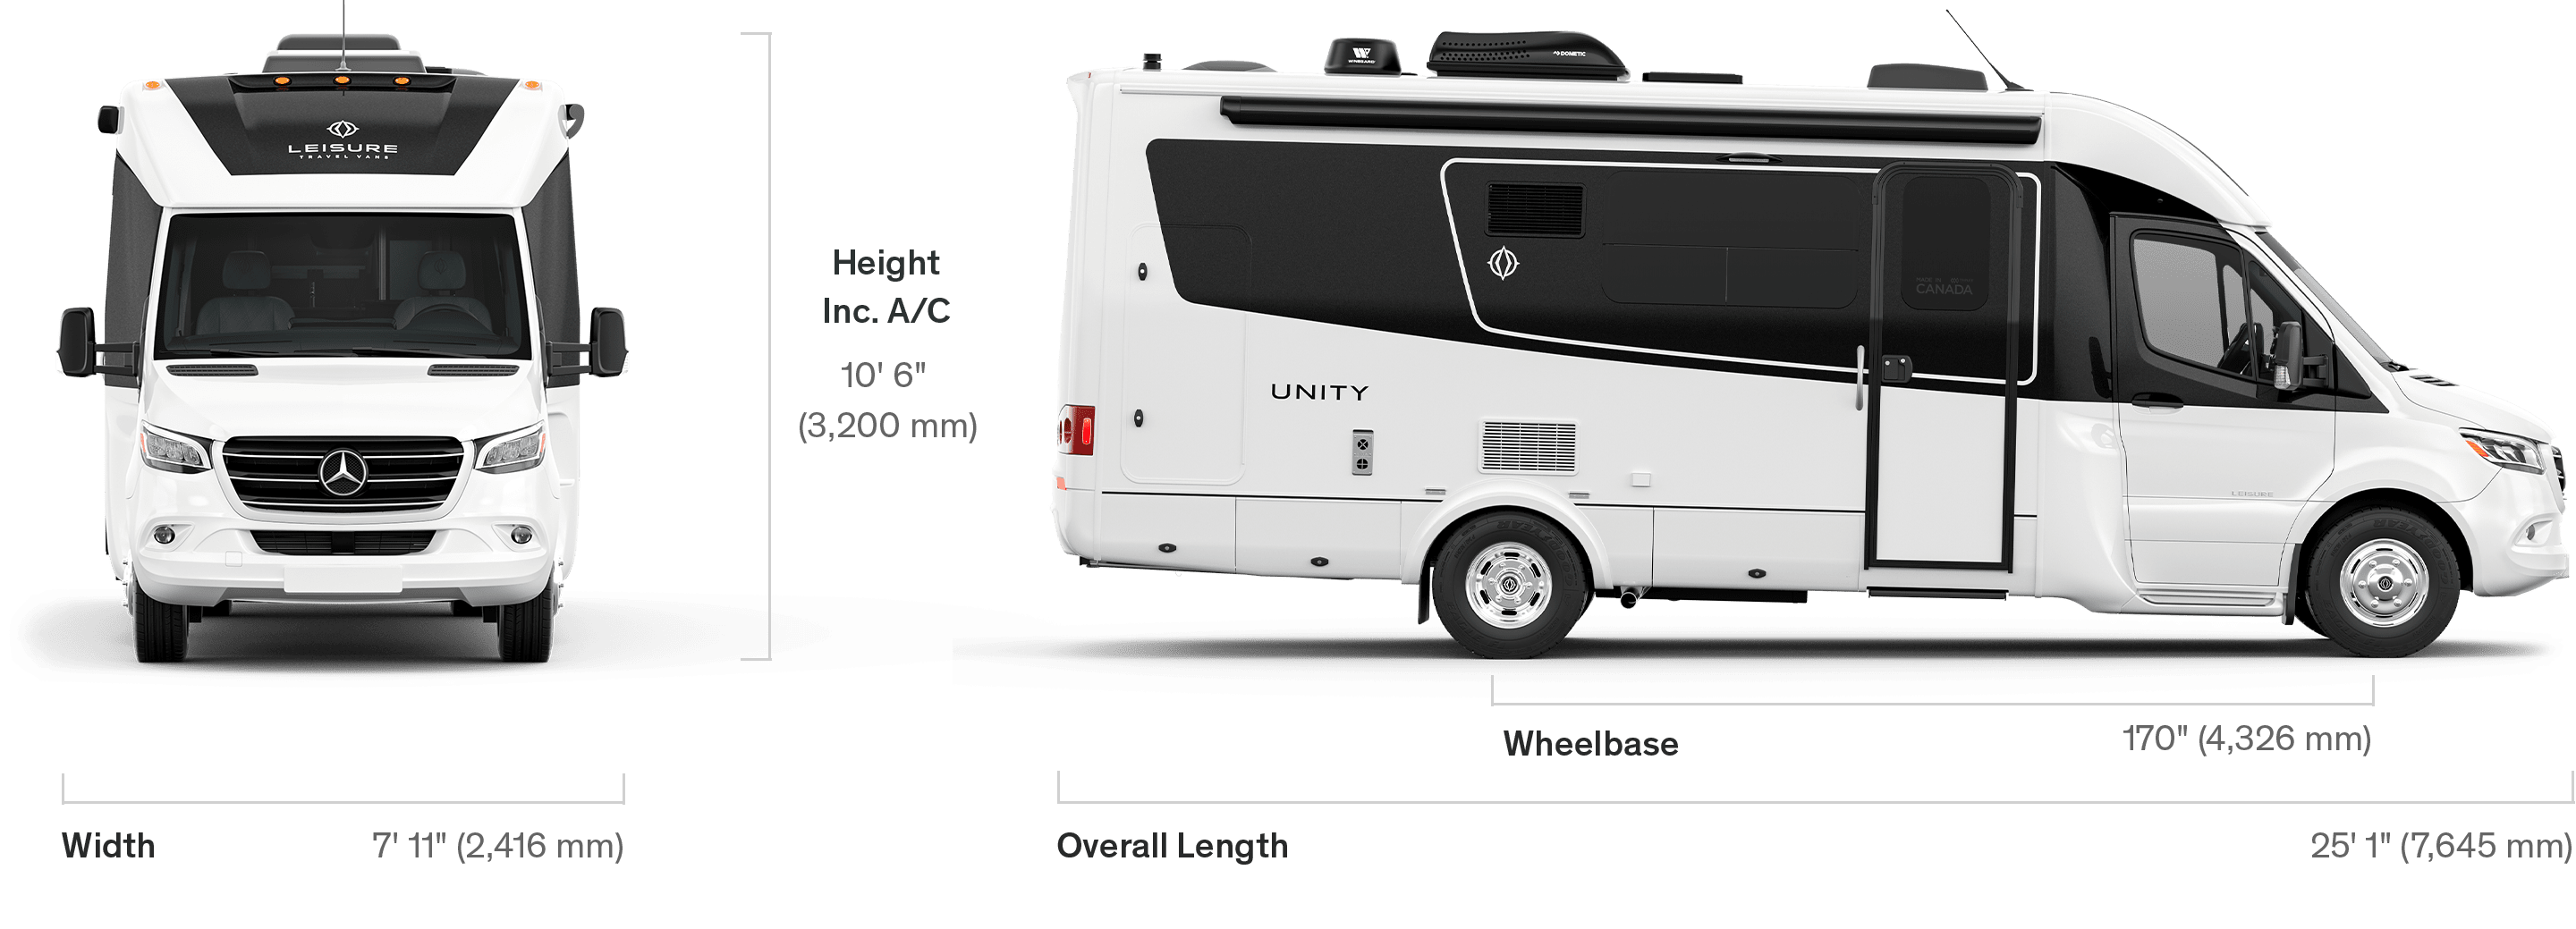 Unity Specifications Leisure Travel Vans